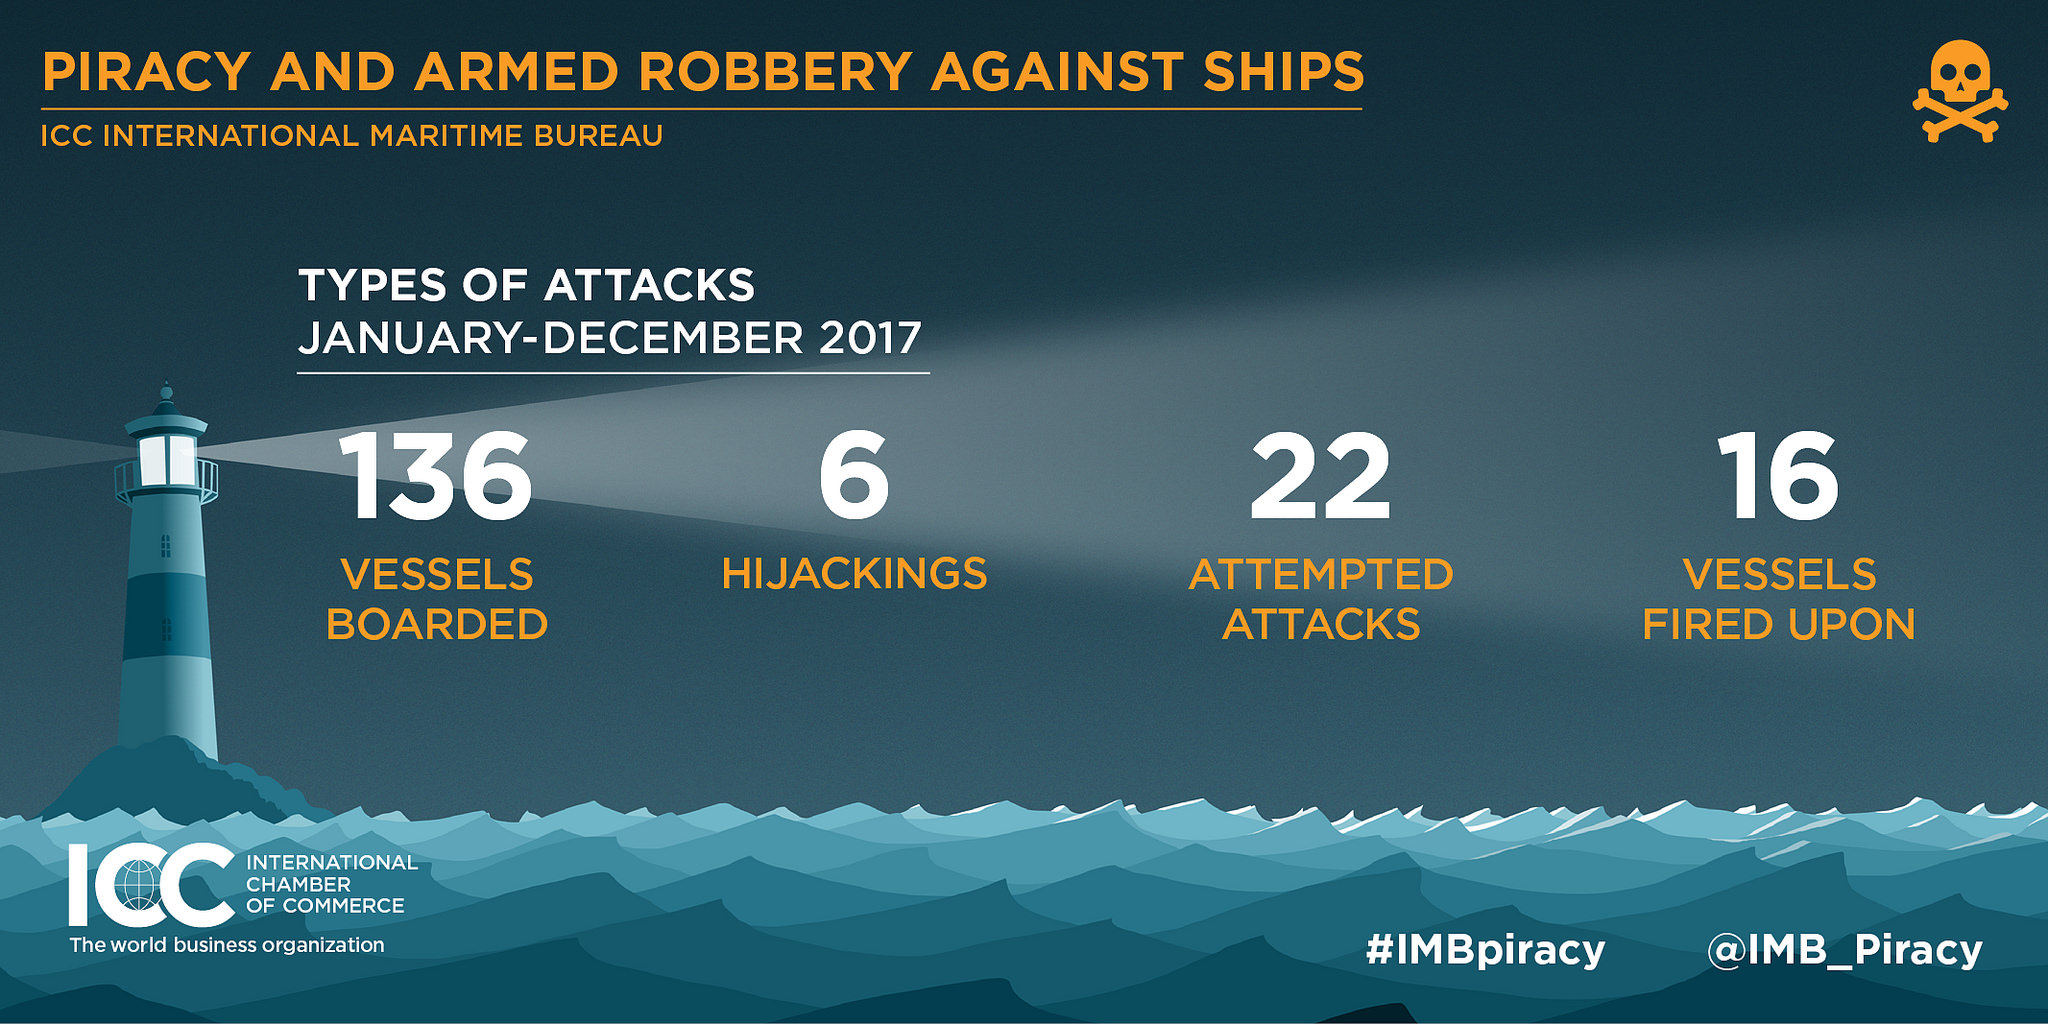 piracy and armed robbery 2018